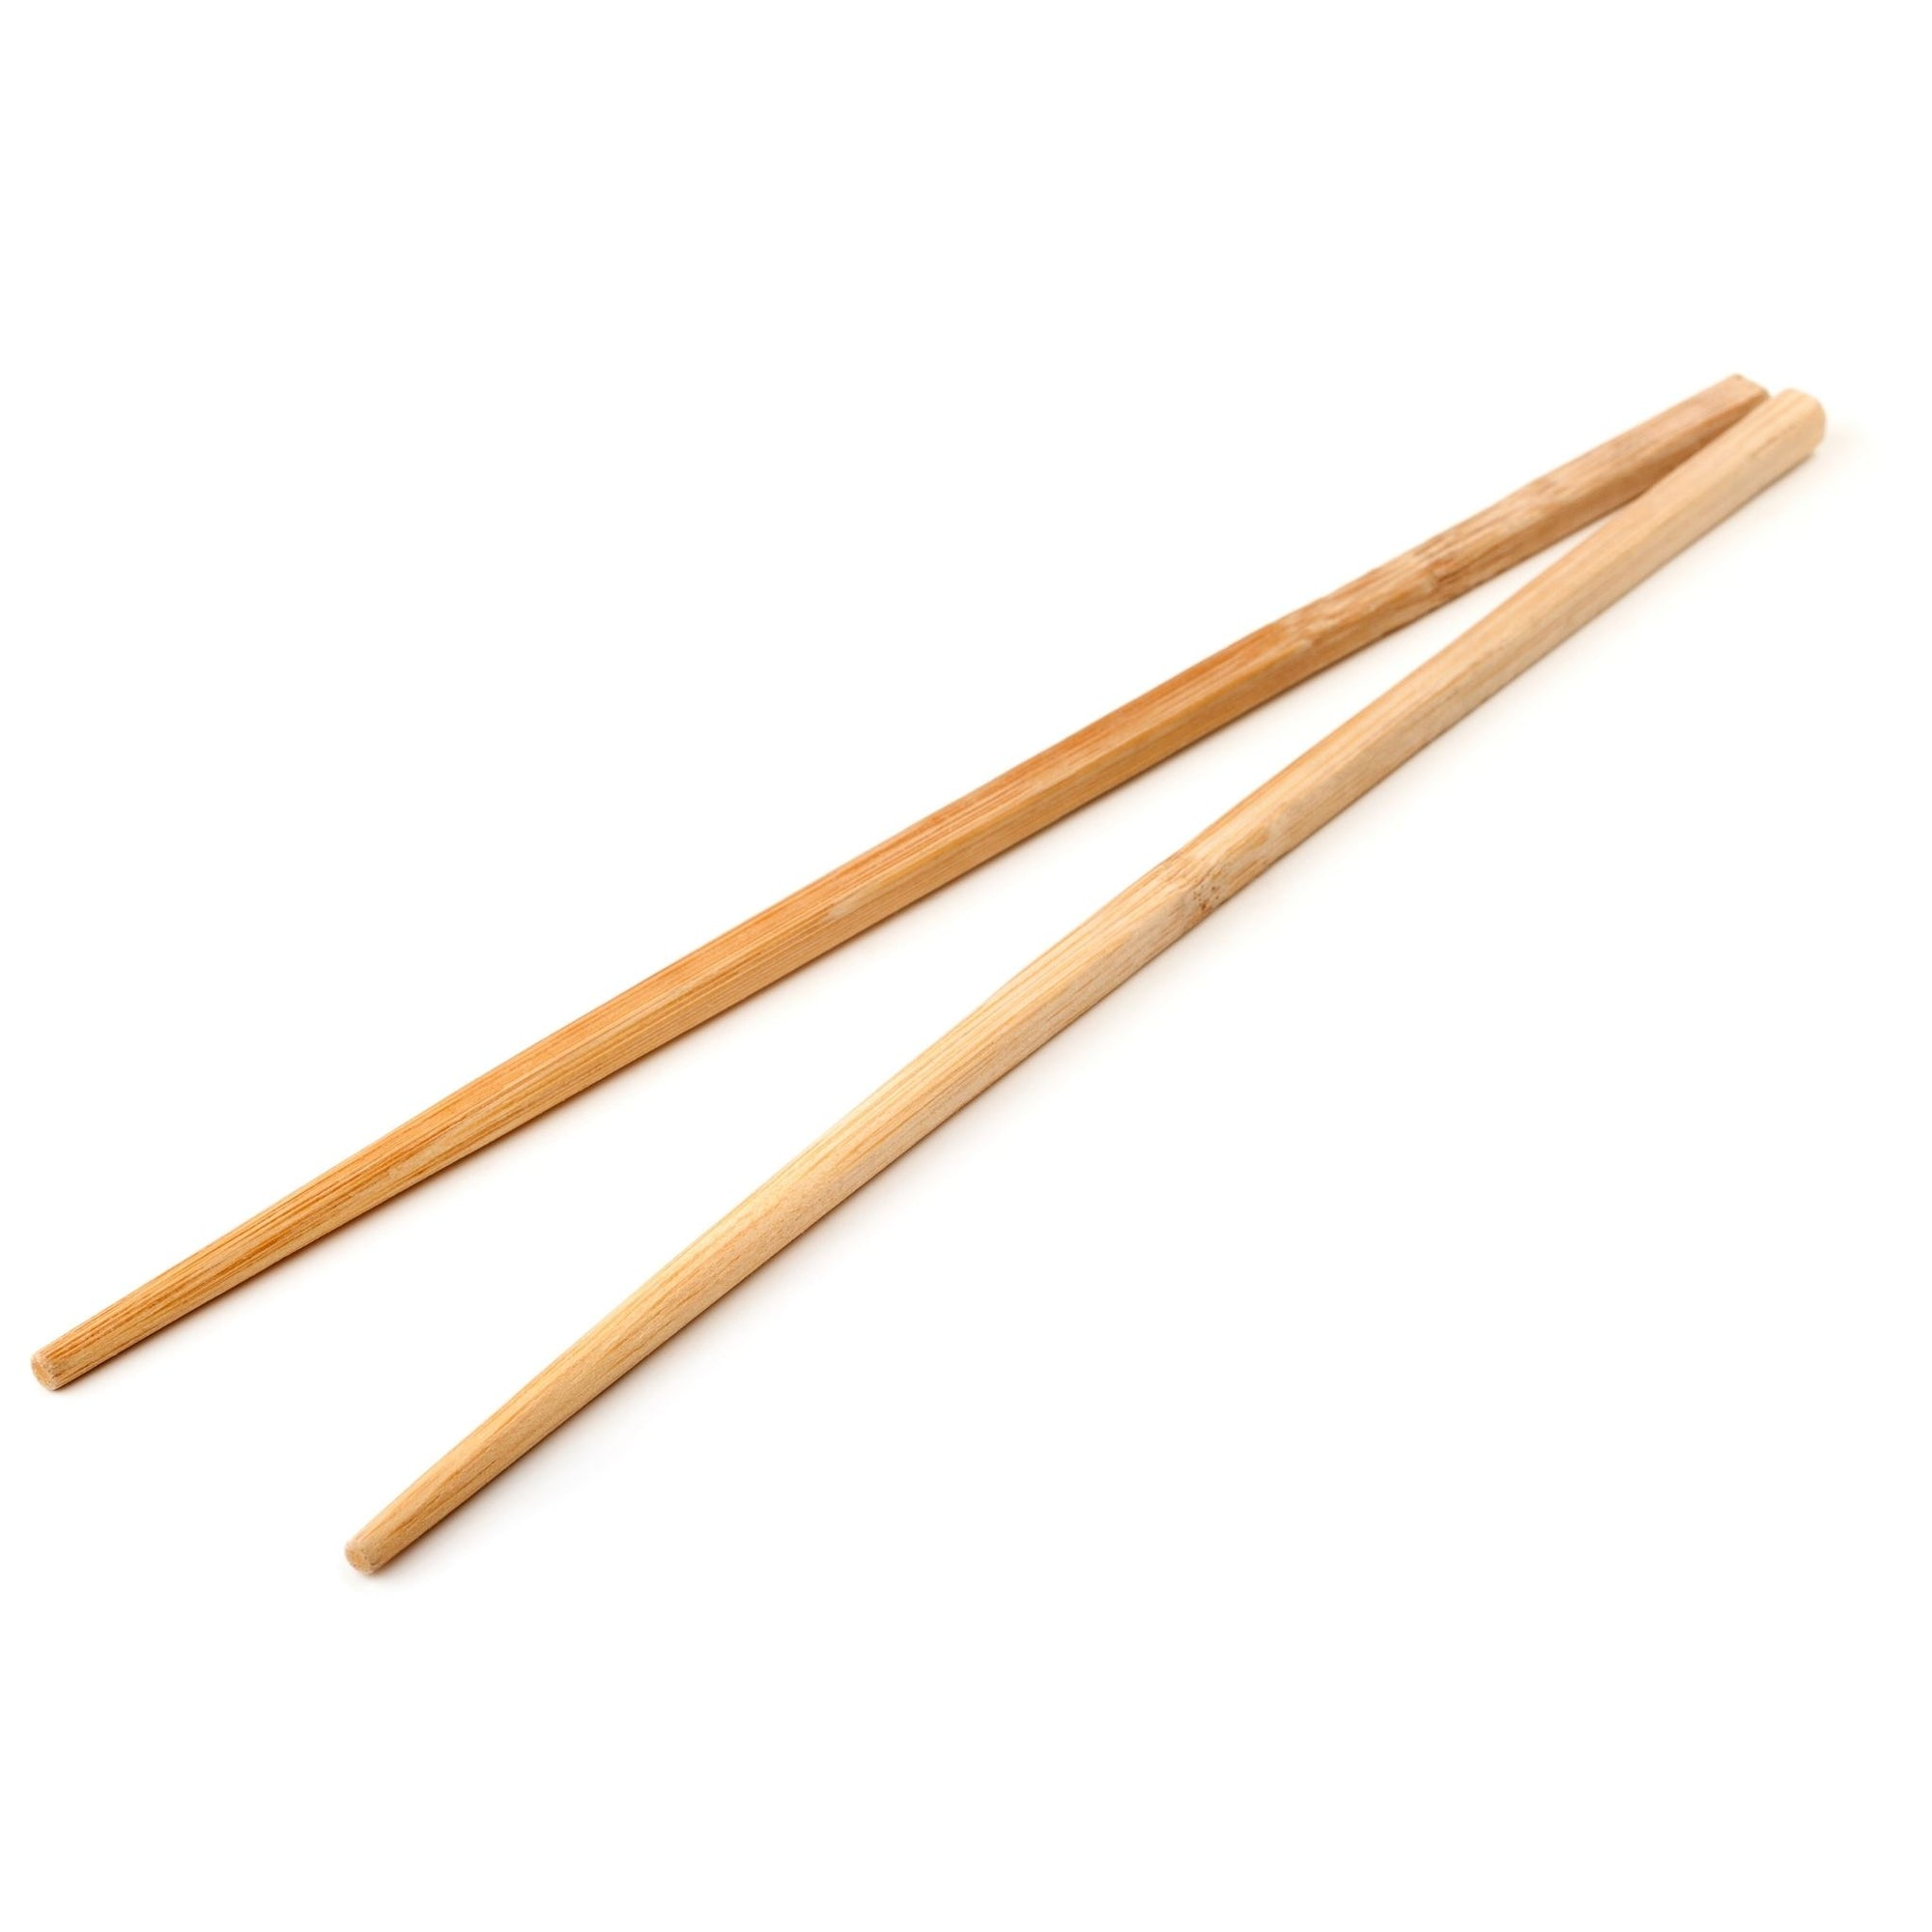 Bamboo Chopsticks (Without Sleeves) 100 per pack